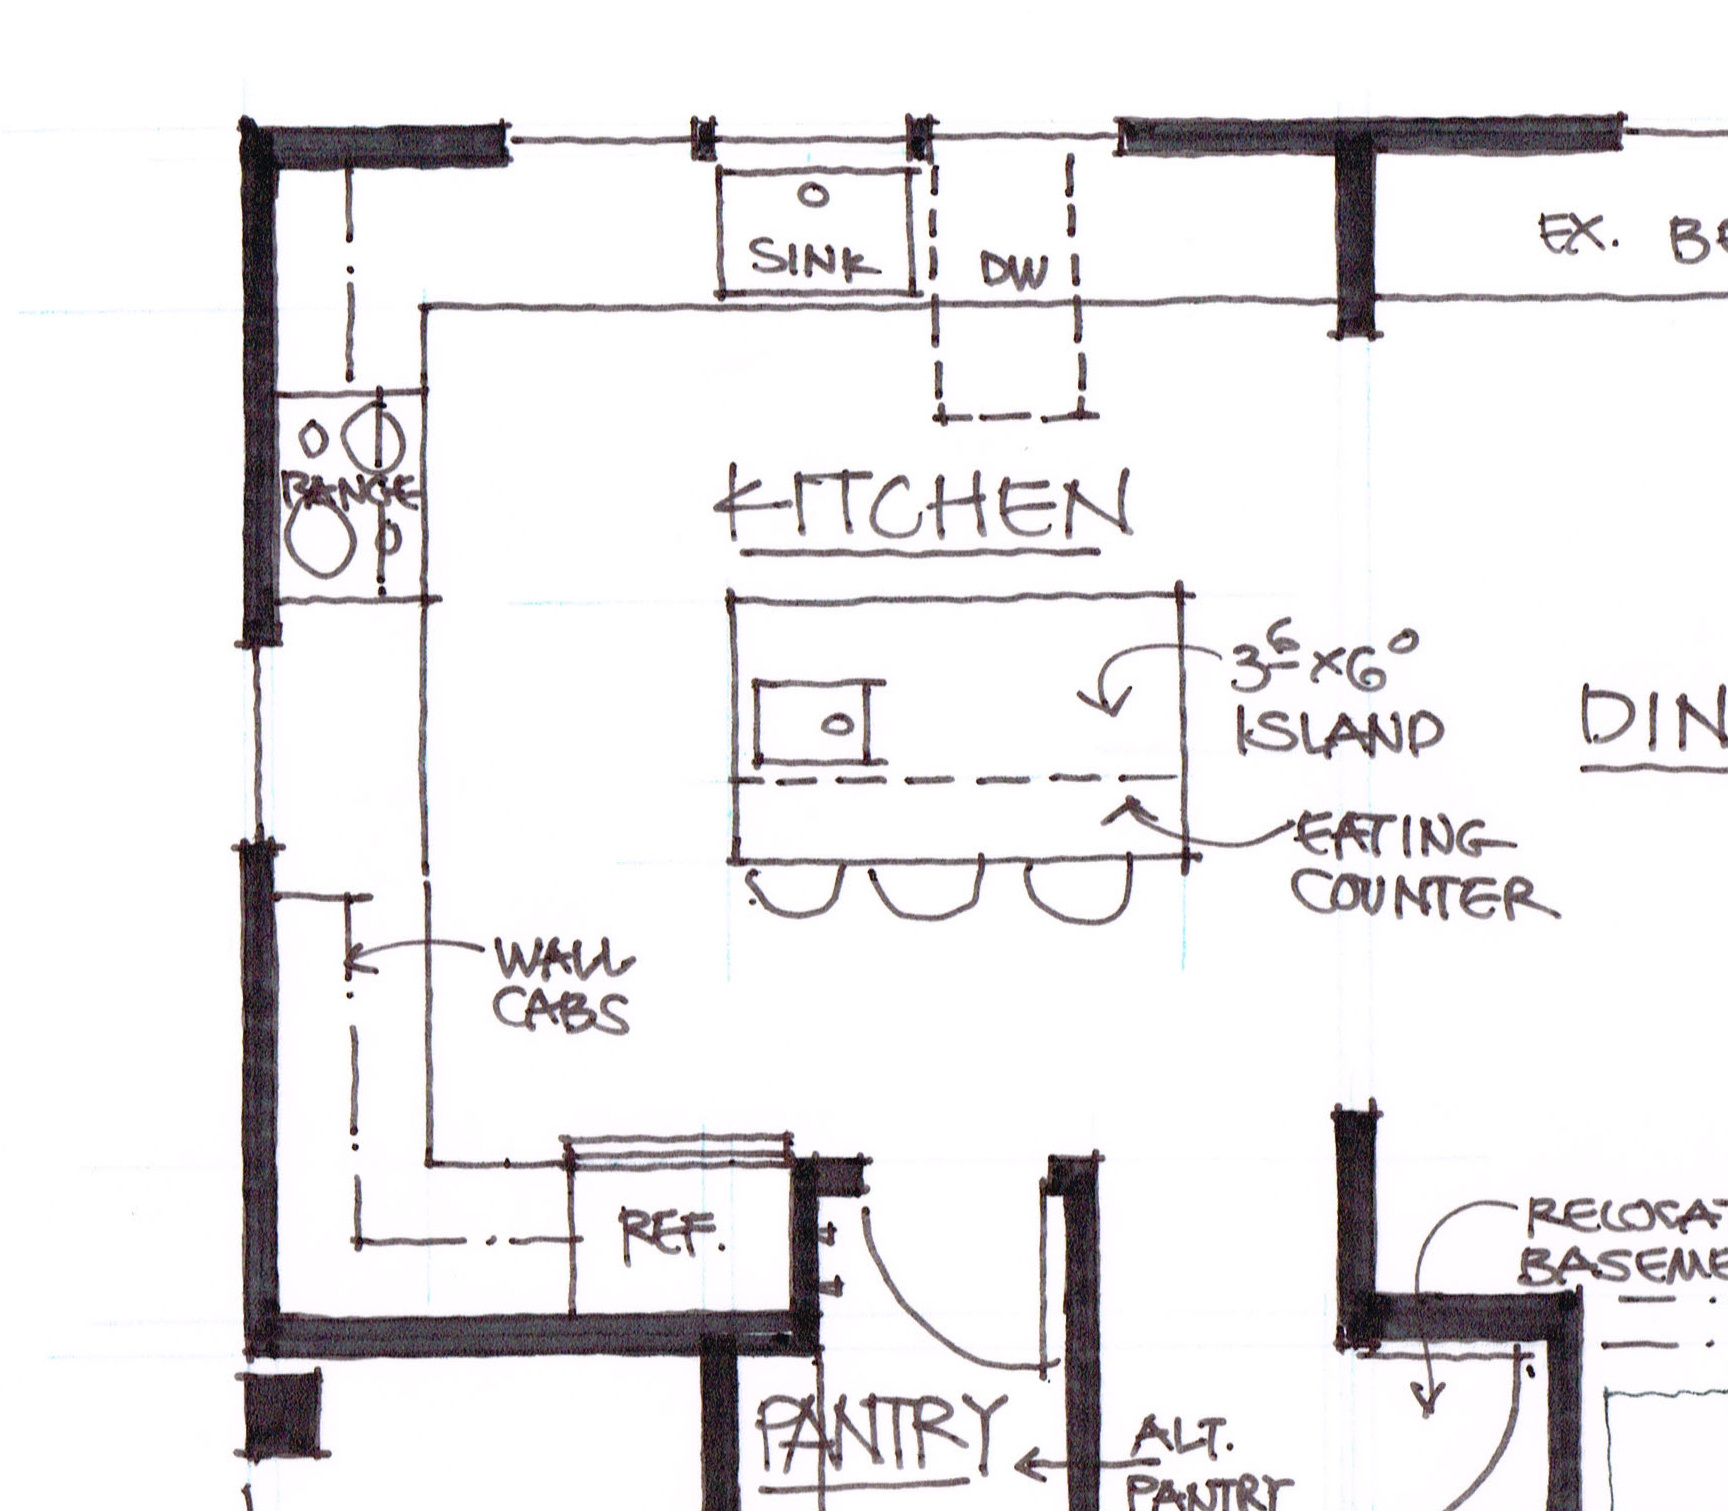 The glade a la carte kitchen let 39 s face the music House plans with large kitchen island